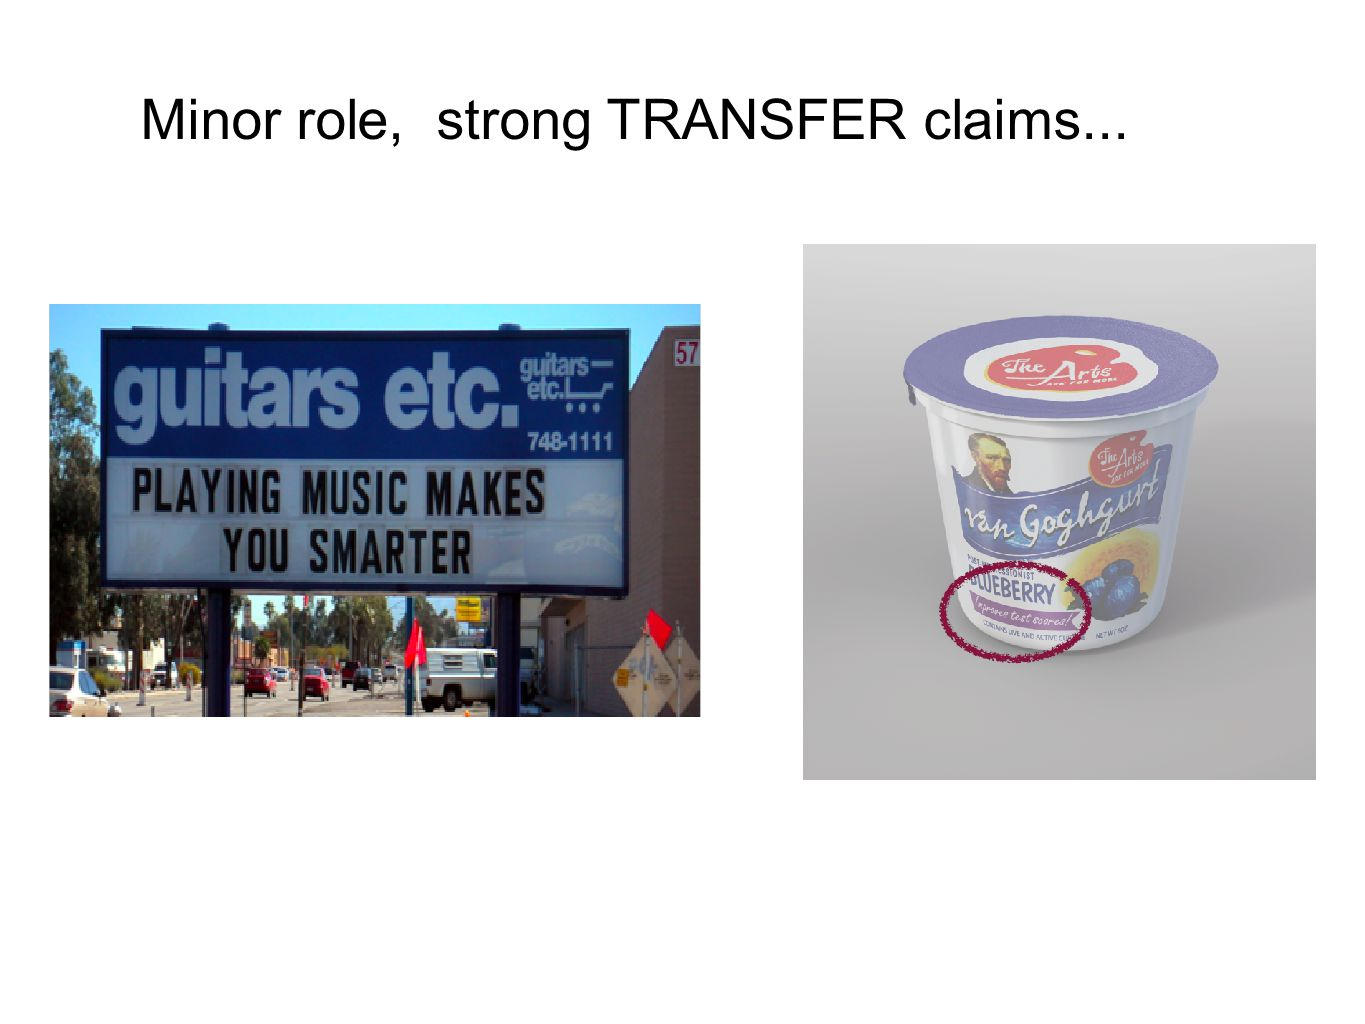 Minor role, strong TRANSFER claims...